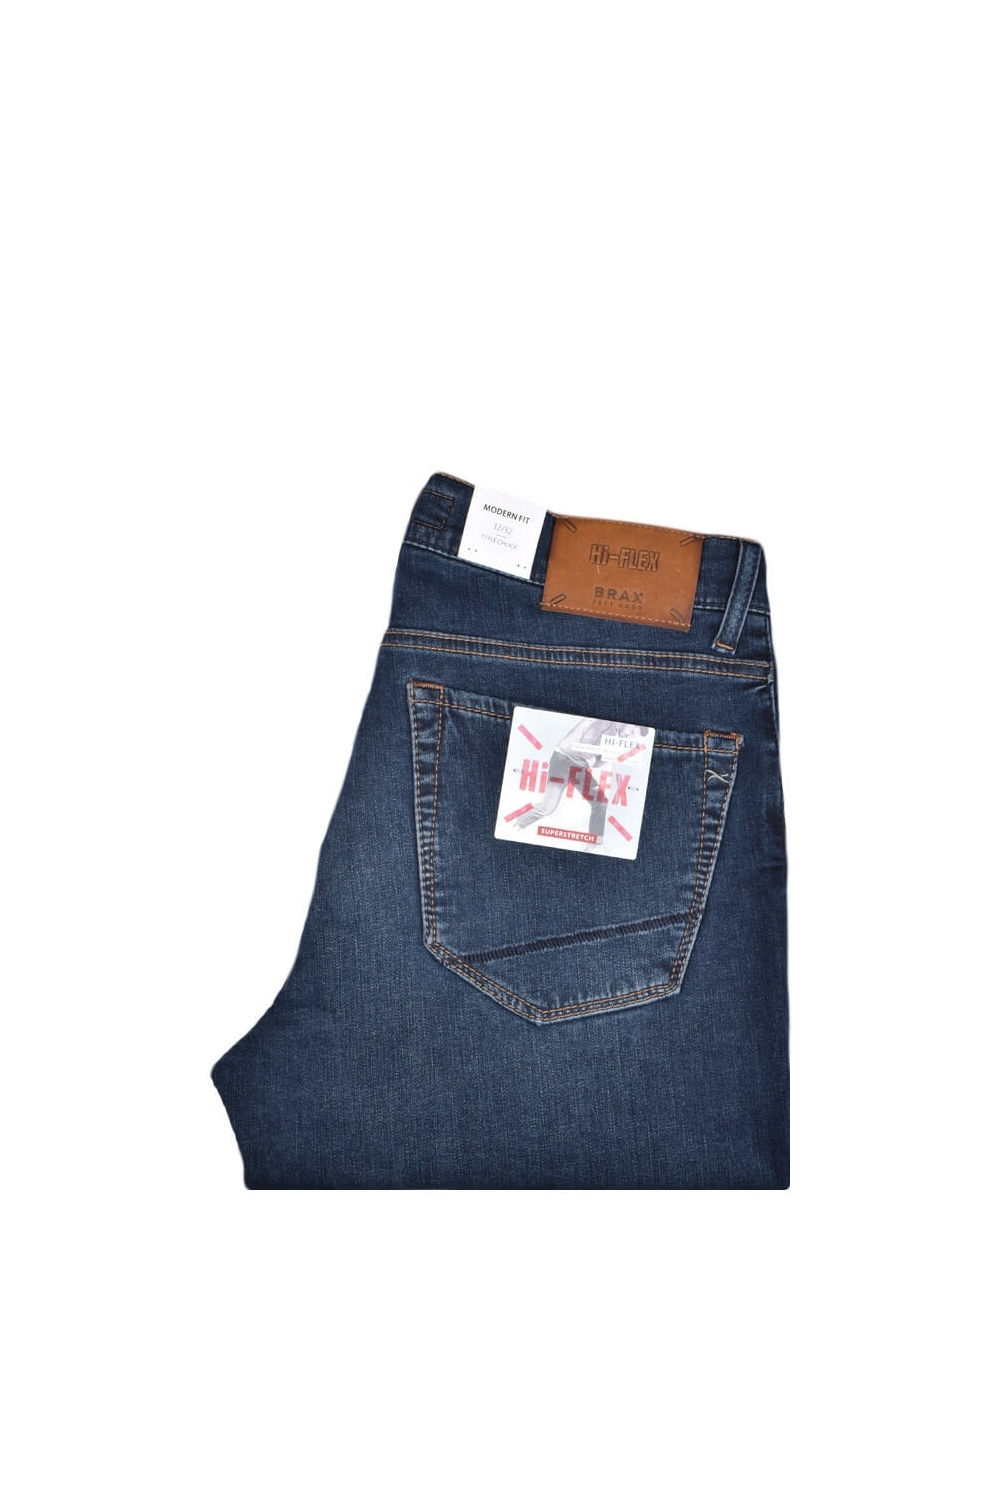 finest selection stable quality incredible prices Brax Chuck Hi-flex Slim Fit Jeans Mid Blue Denim Size: 34W32L